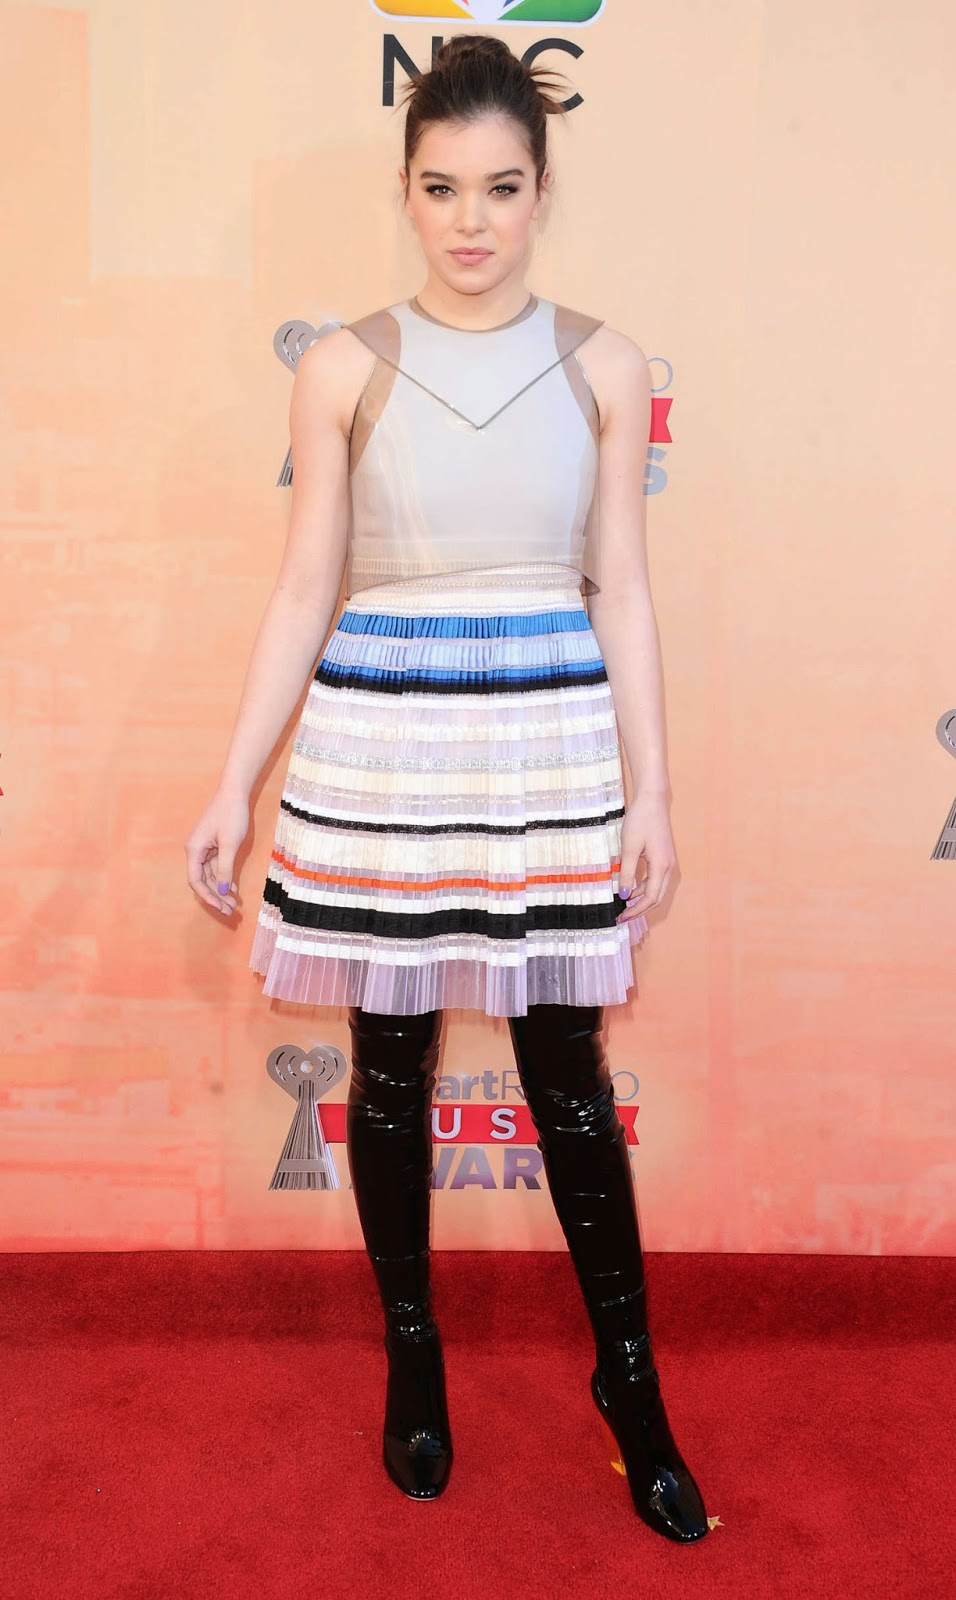 Hailee Steinfeld in Christian Dior Couture at the 2015 iHeart Radio Music Awards in LA